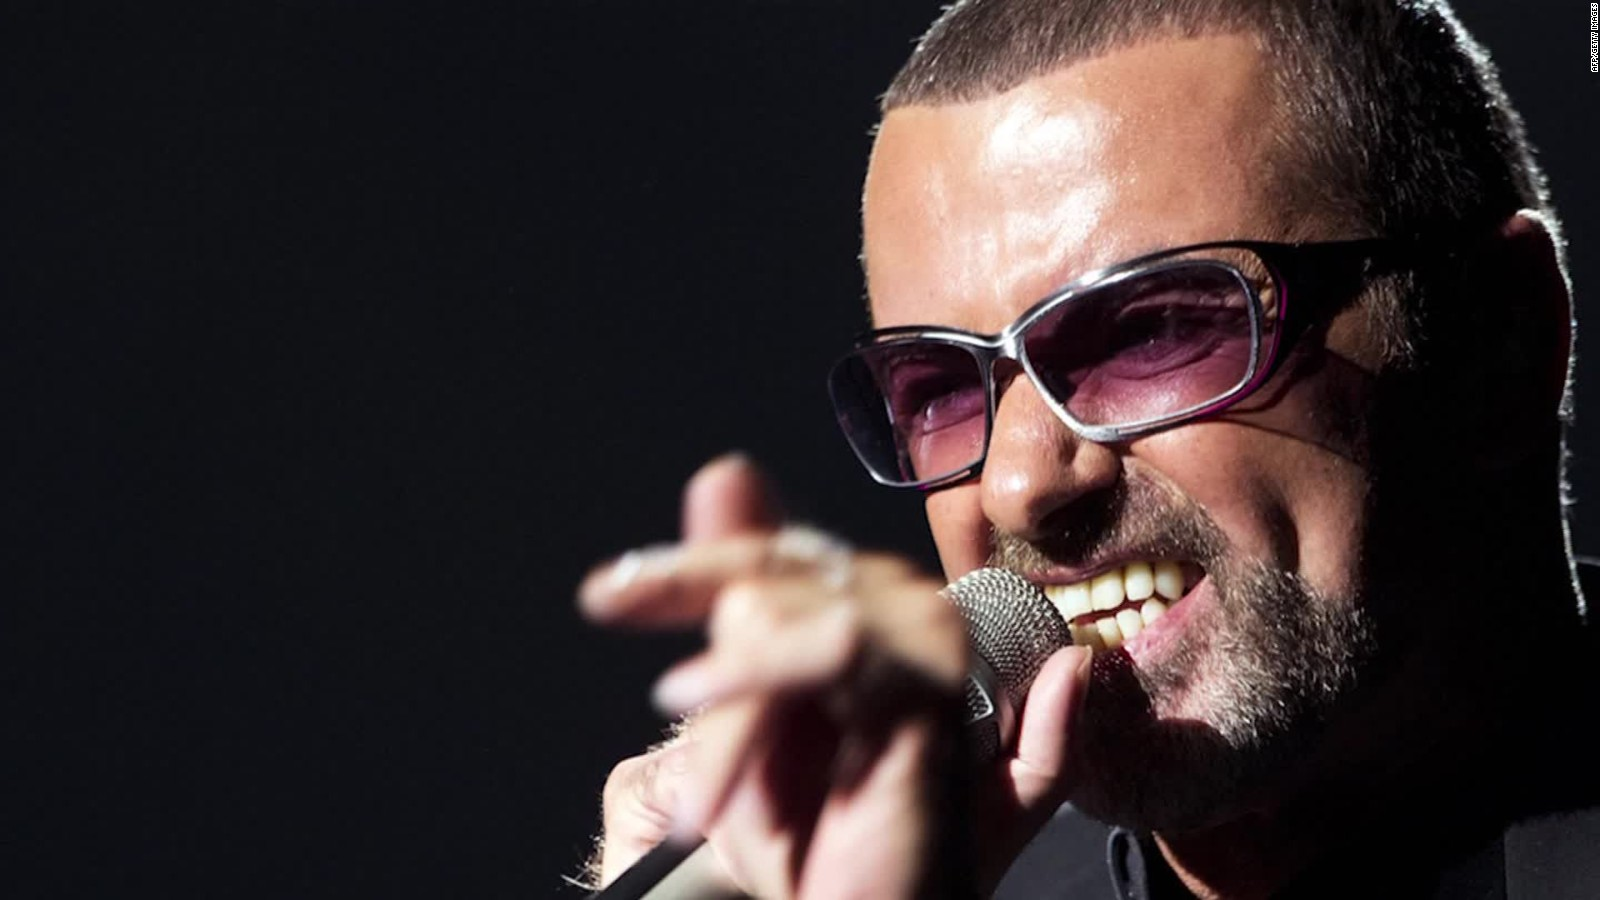 George michael pop superstar has died at 53 new york times - George Michael Pop Superstar Has Died At 53 New York Times 28